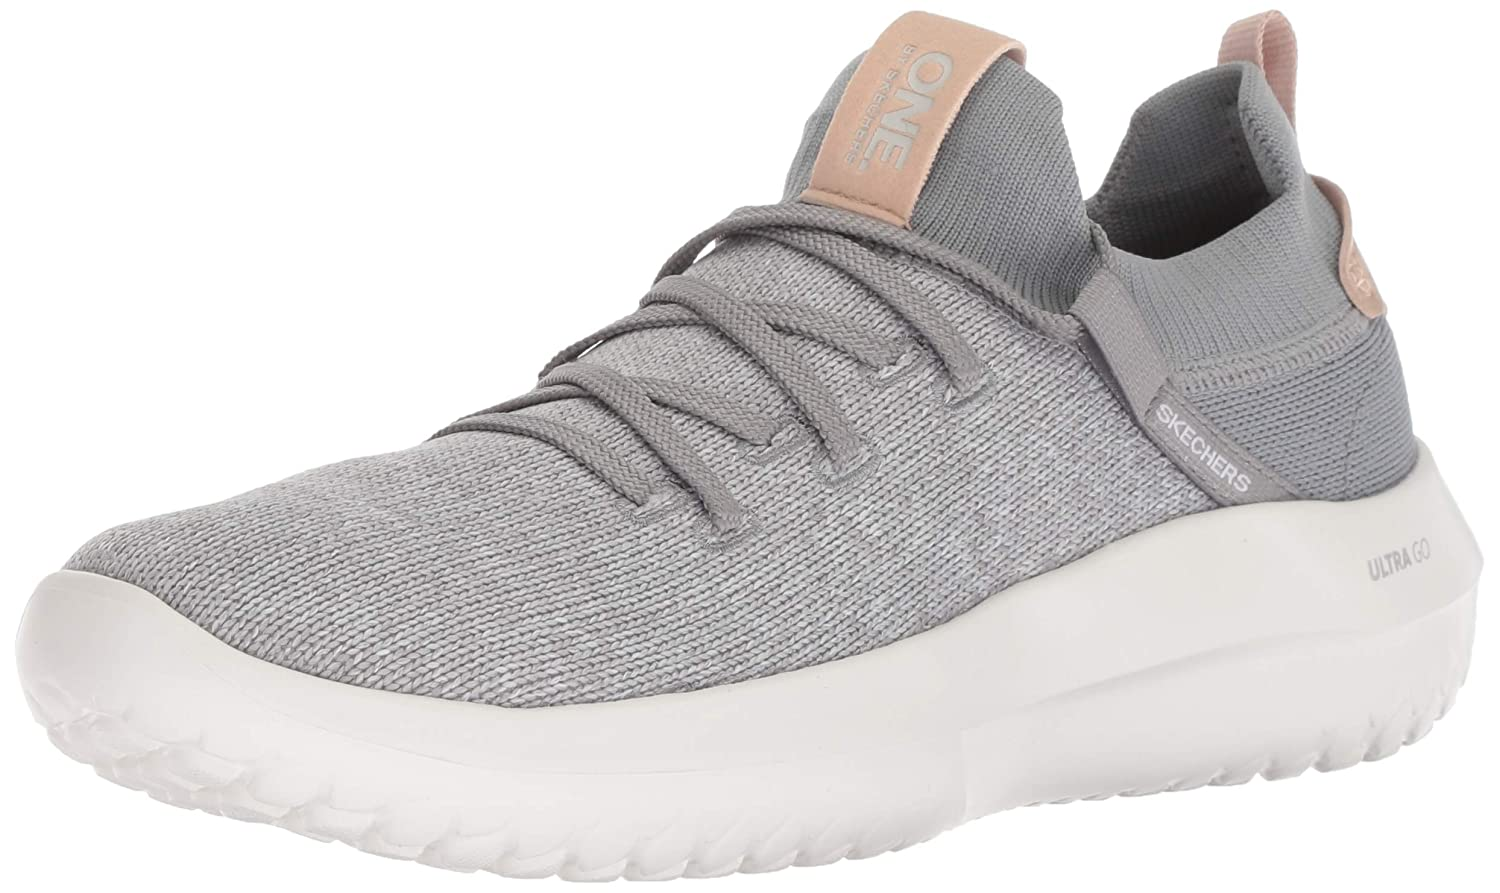 Cor Downtown Skechers18040One Ultra Ultra Skechers18040One Downtown tQshCrd